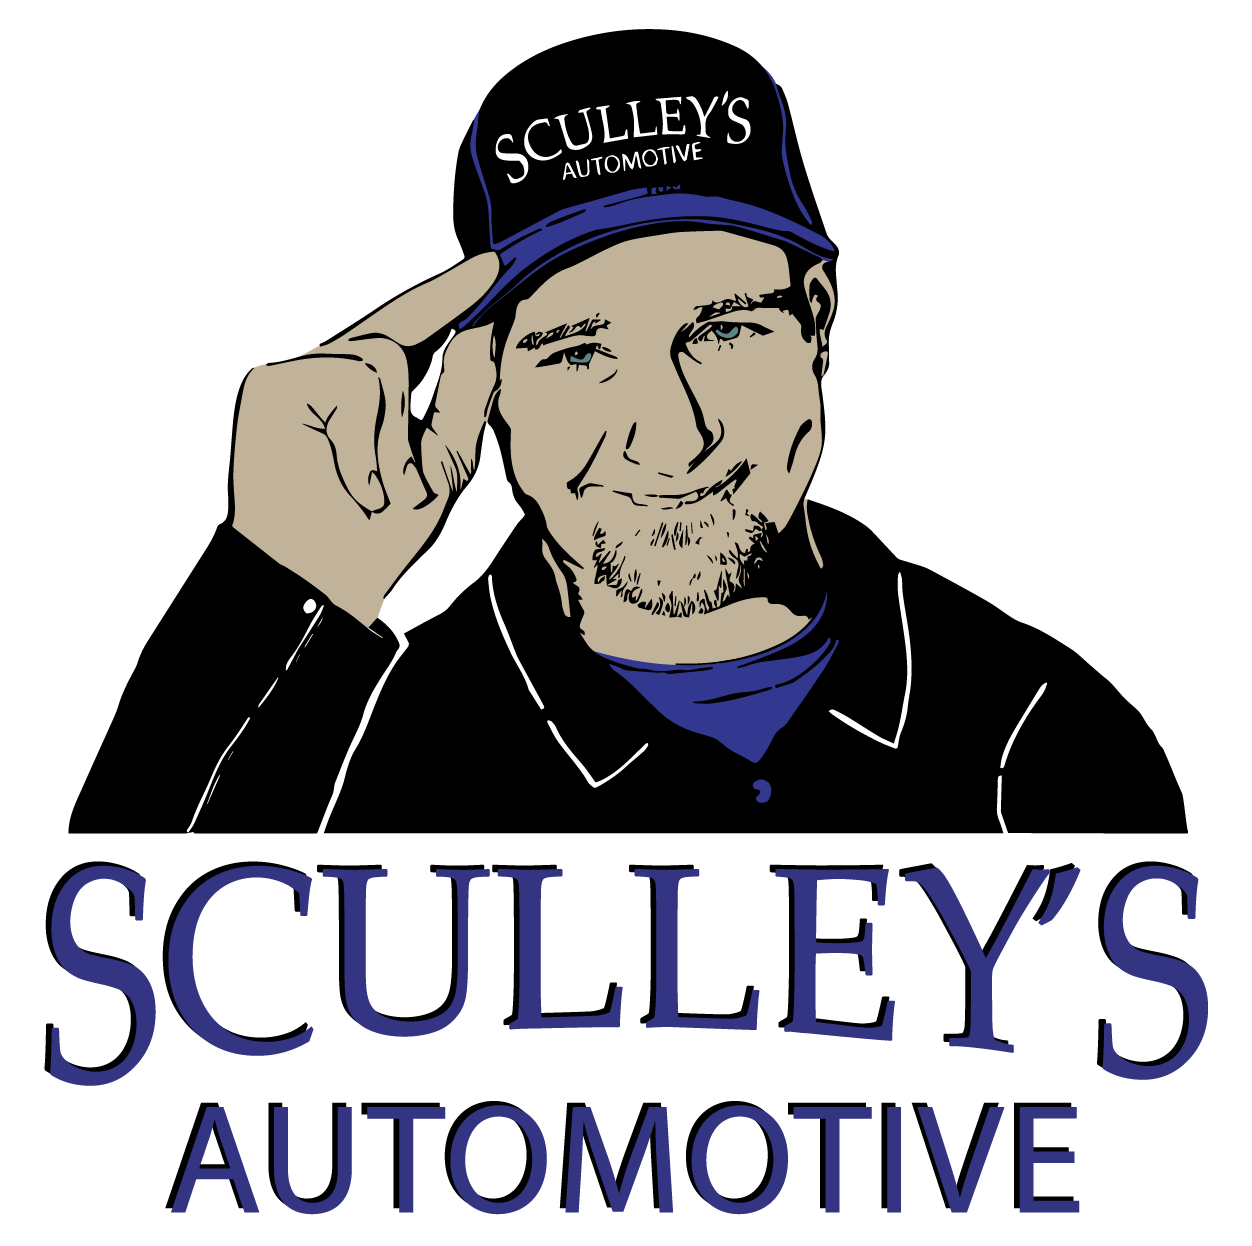 Sculley's Automotive